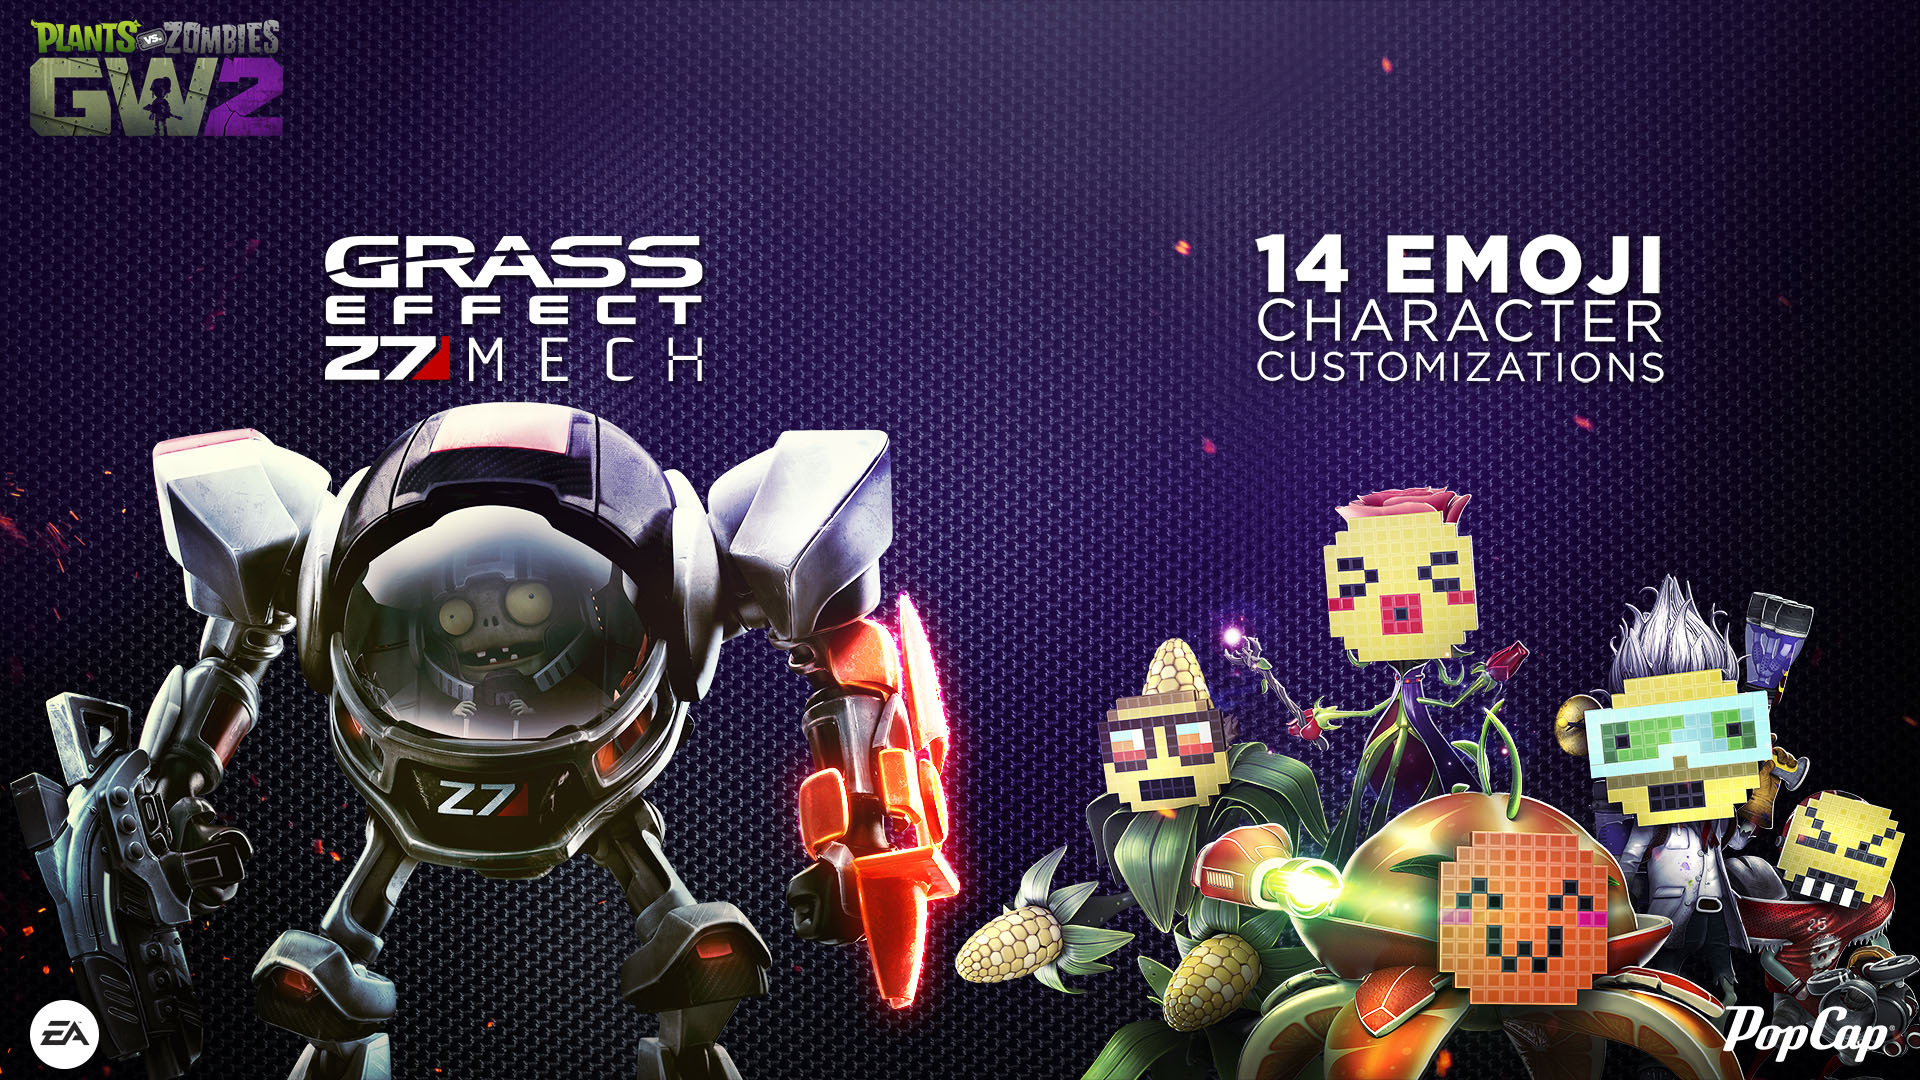 Plants Vs Zombies Garden Warfare 2 Release Date And Grass Effect Mech Revealed Ar12gaming